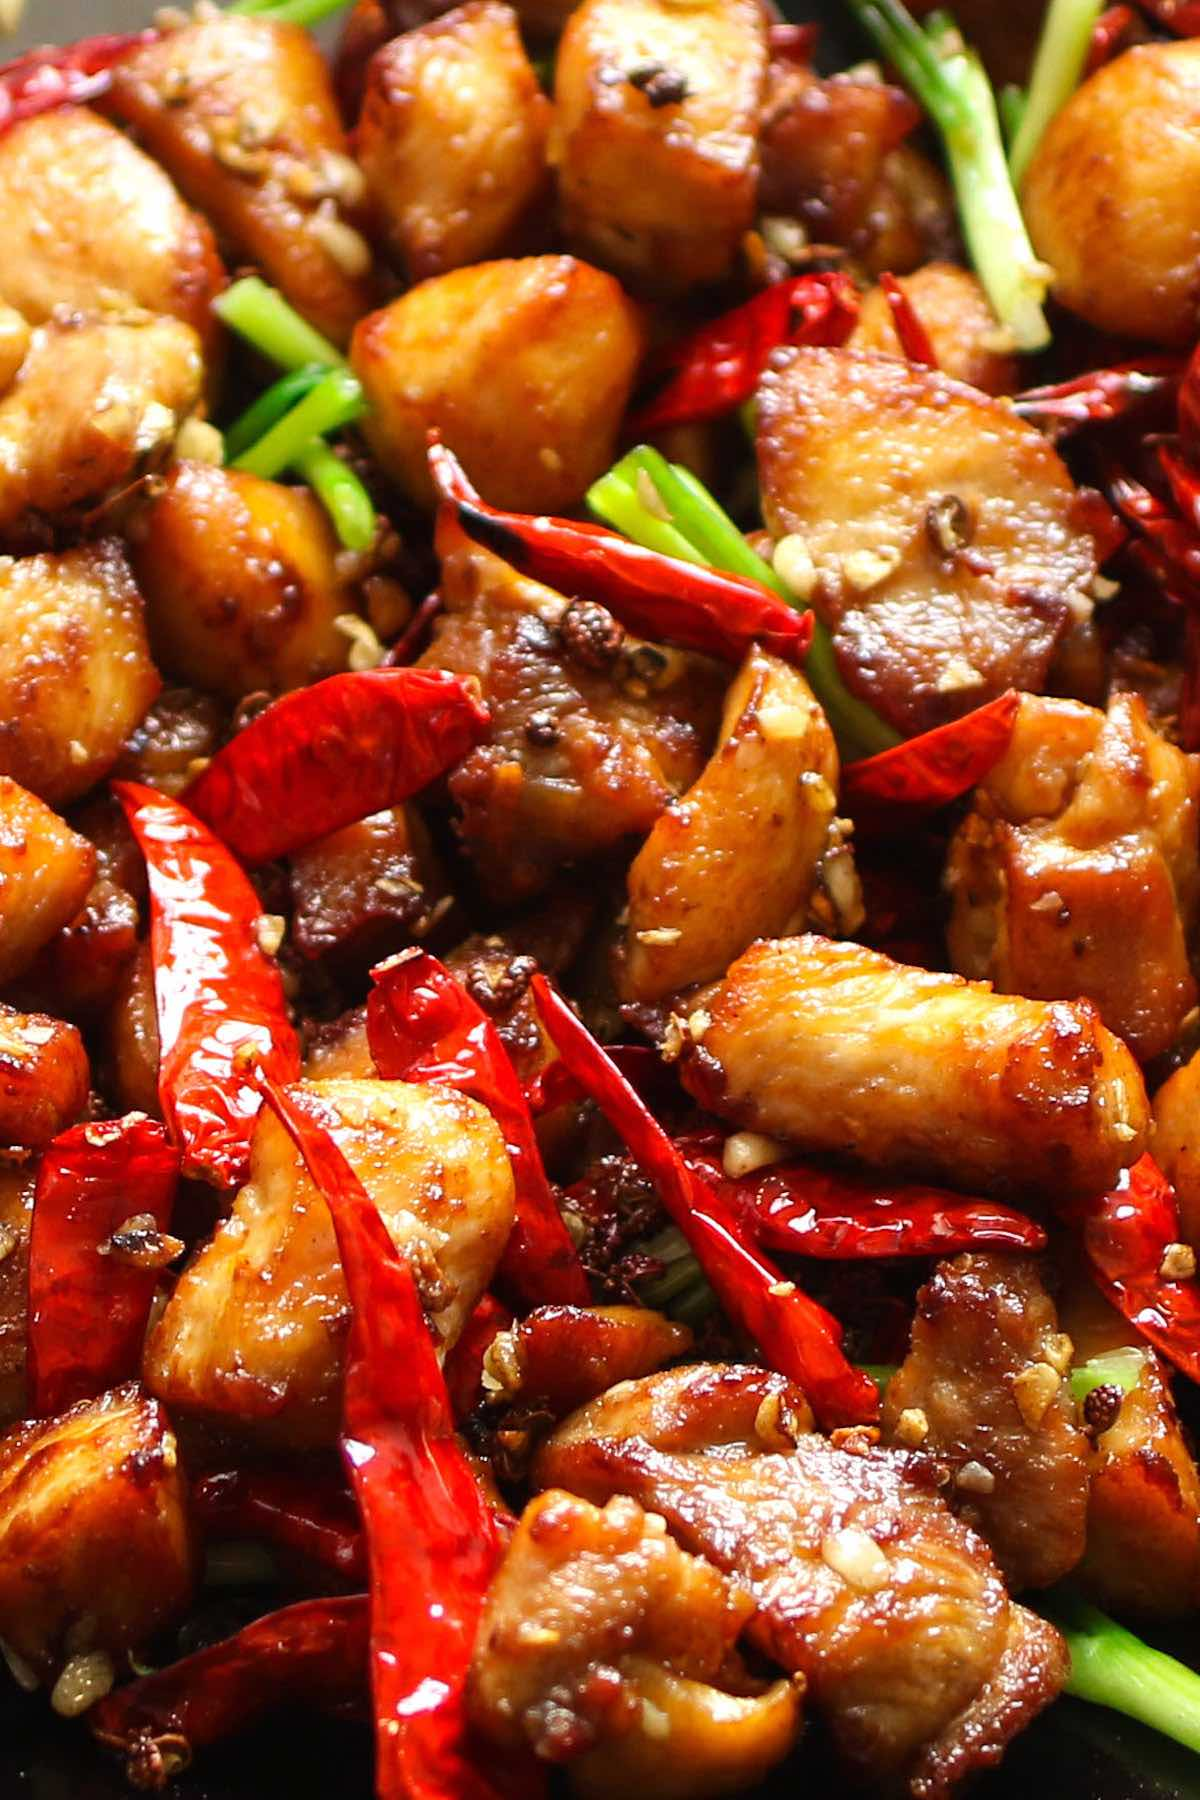 SzechuanChicken is an easy Chinese dish with the perfect combination of spicy, salty and sweet flavors. This Szechuan style chicken recipe tastes like your favorite Chinese takeout and is ready in less time. The best part, you can control the spiciness to make it mild or EXTRA HOT!